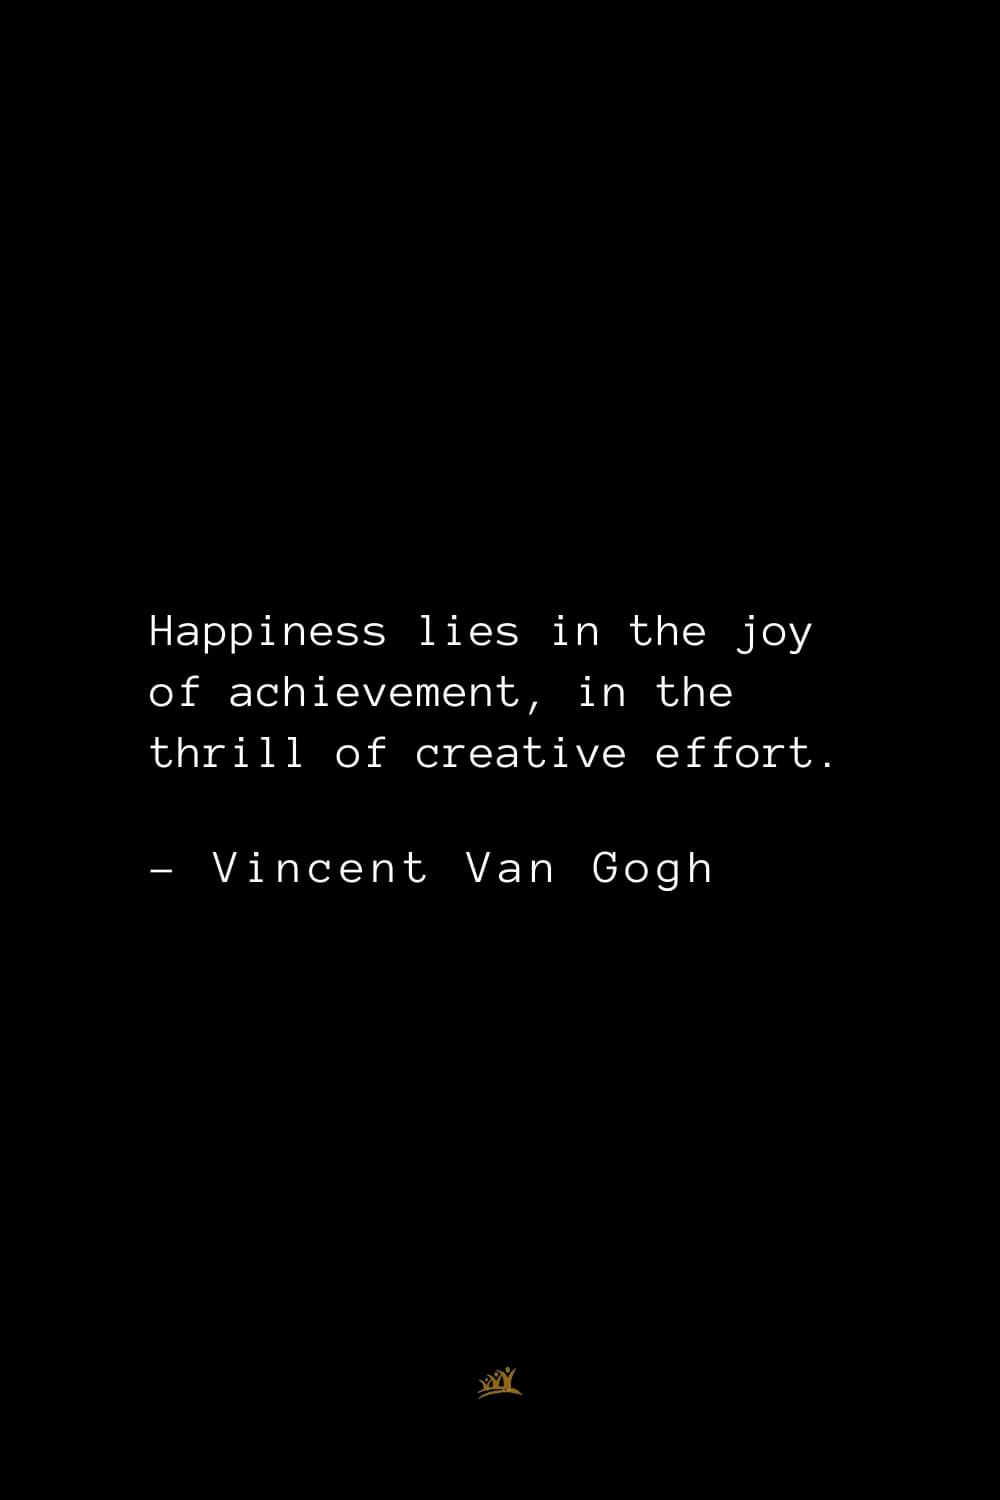 Top 34 Vincent Van Gogh Quotes about Life, Love, and Art